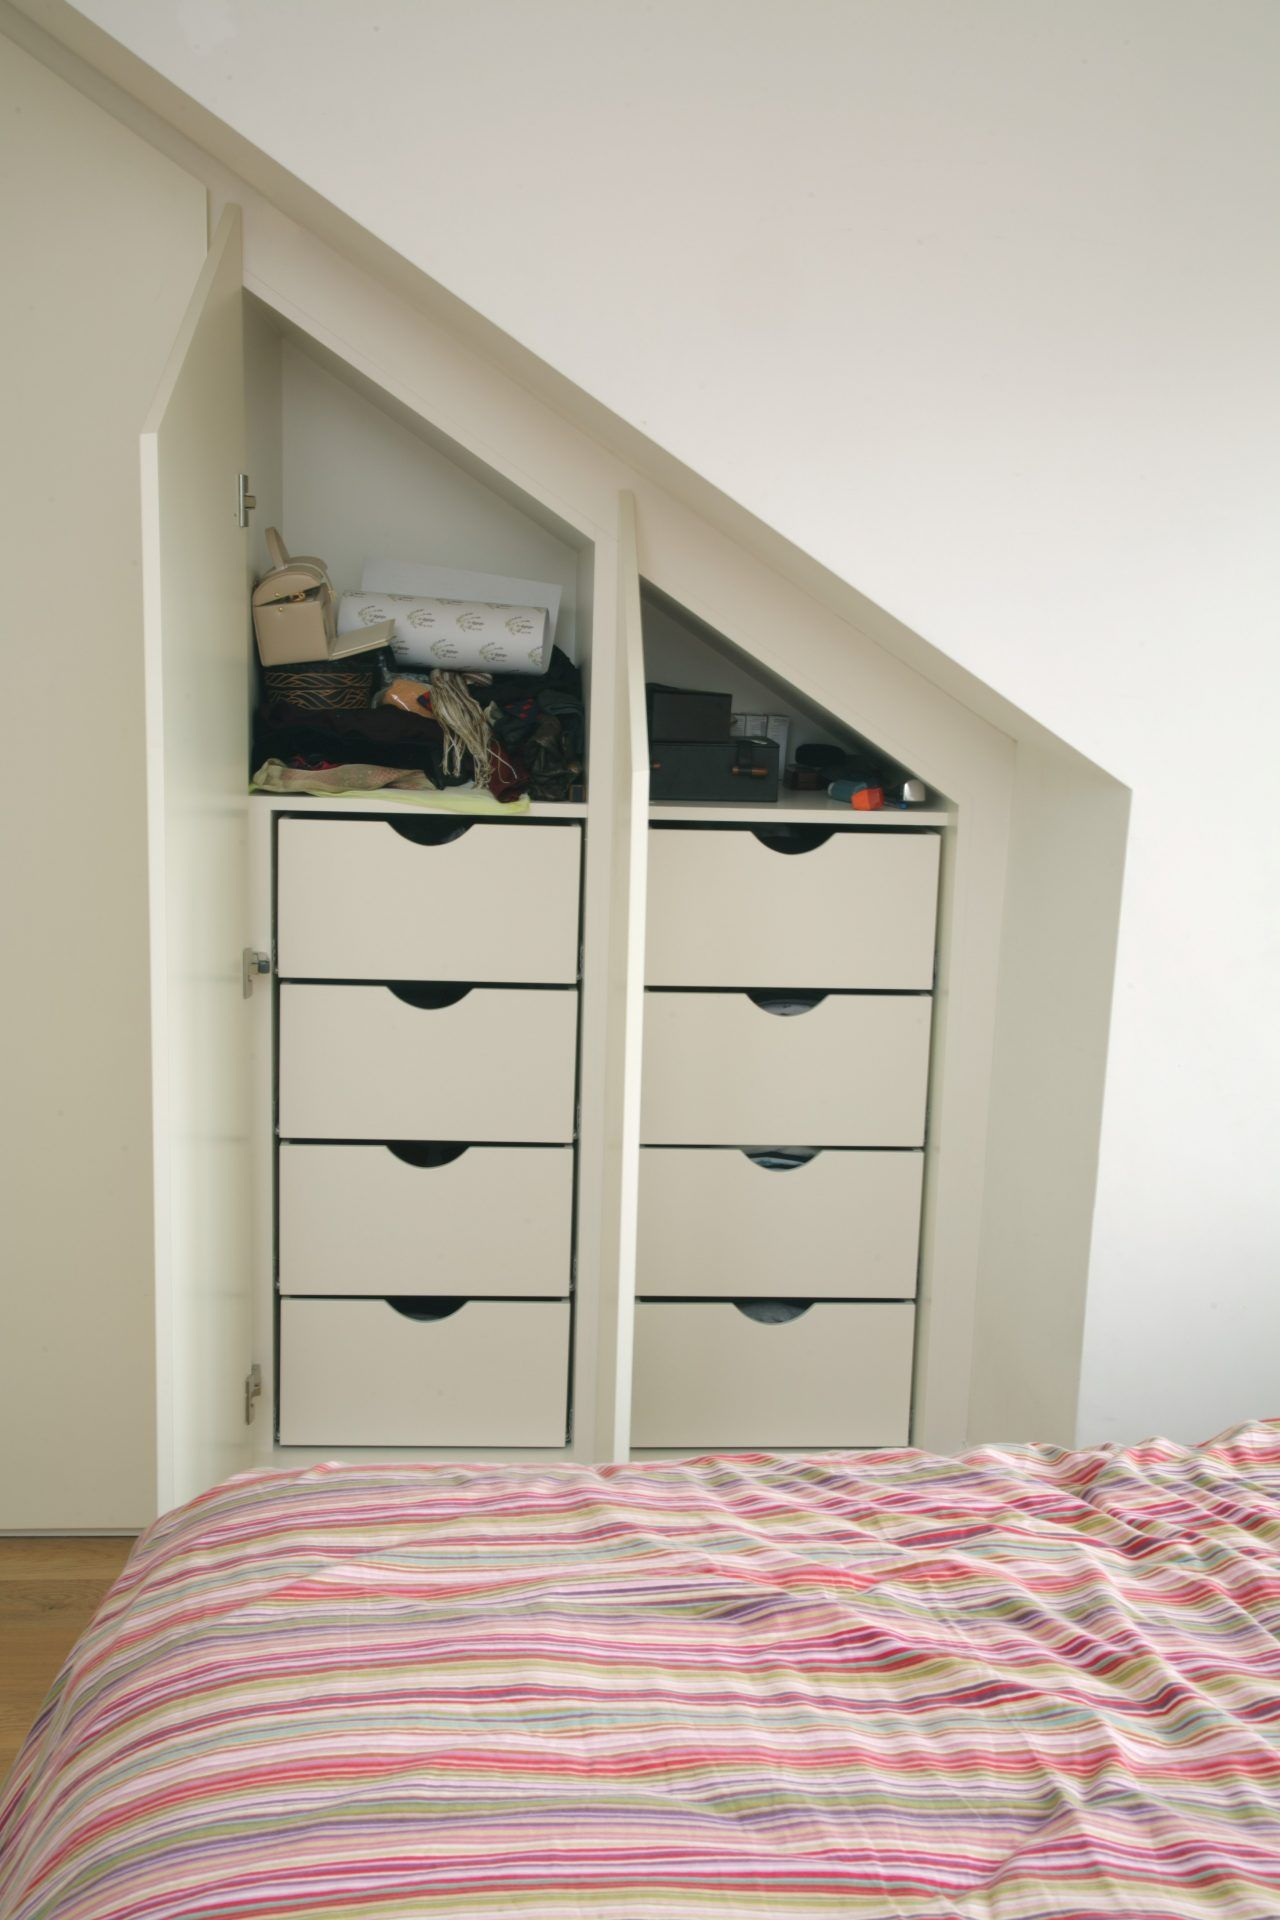 Loft bedroom storage ideas  Contemporary fitted wardrobes for loft bedroom   inspirace